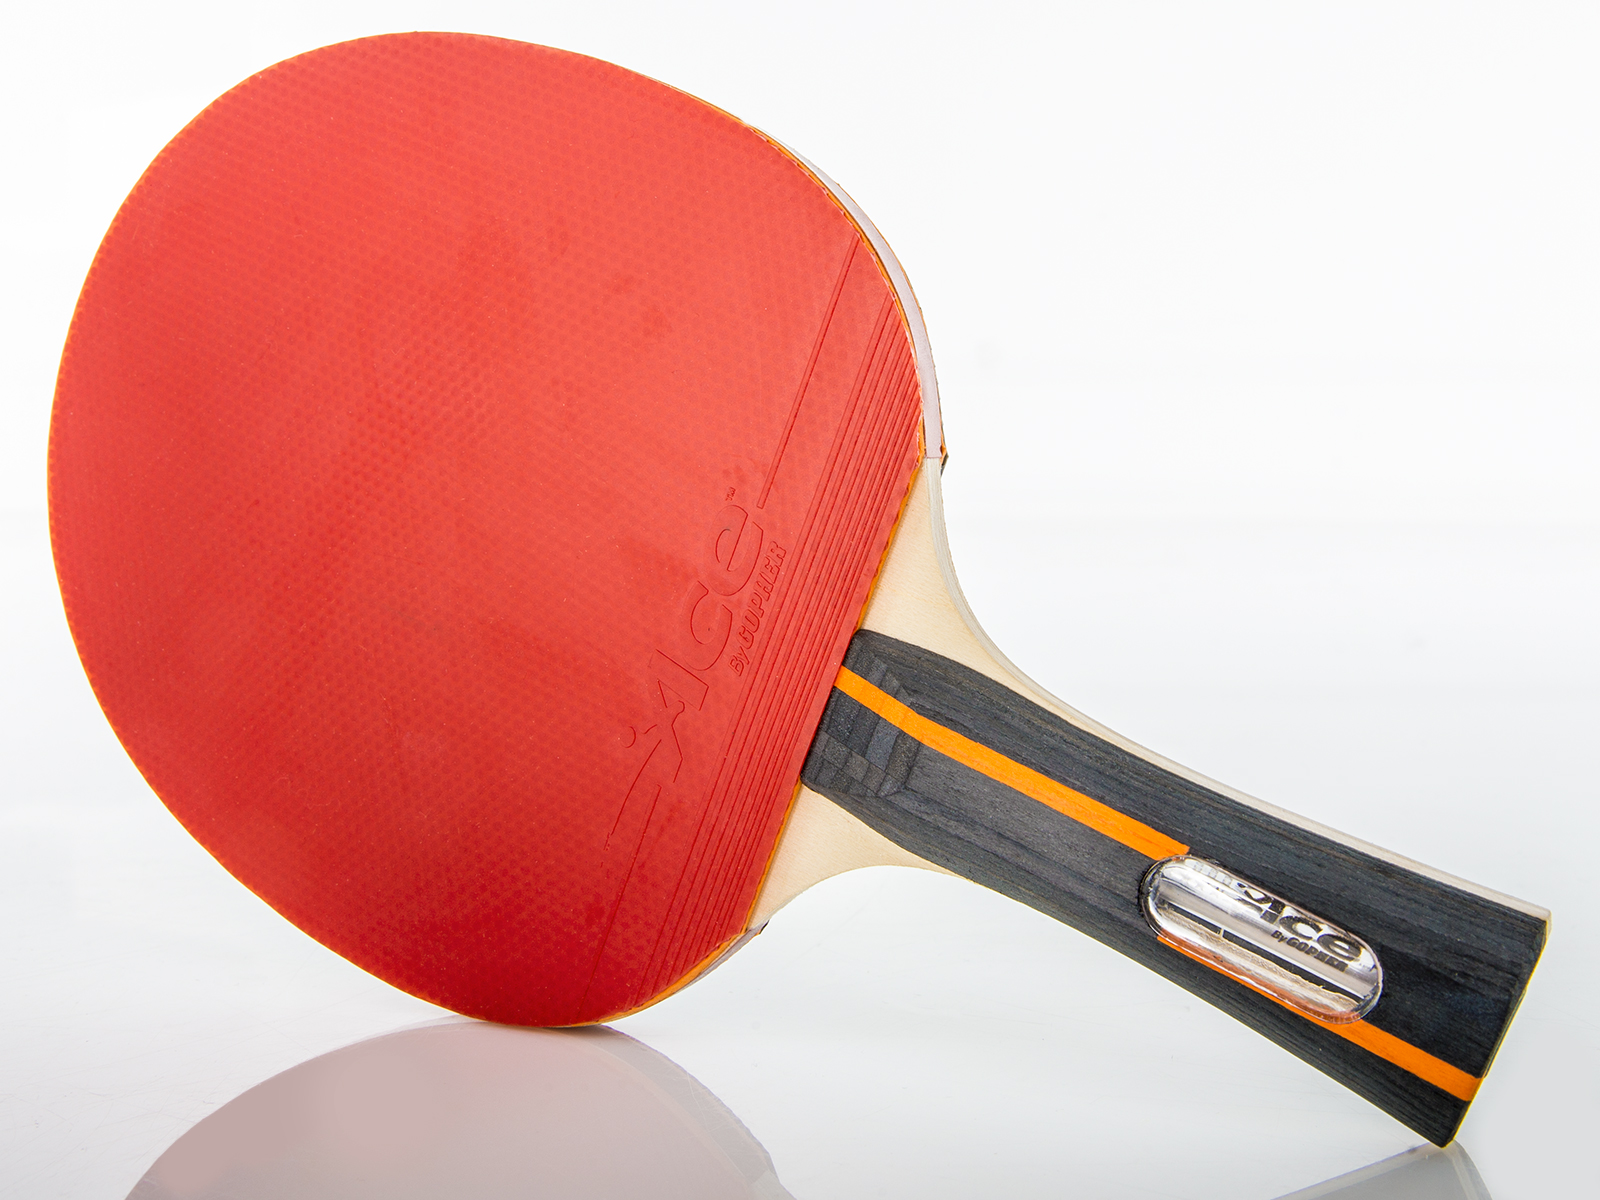 Gopher Ace 3 Star Table Tennis Paddle Gopher Sport